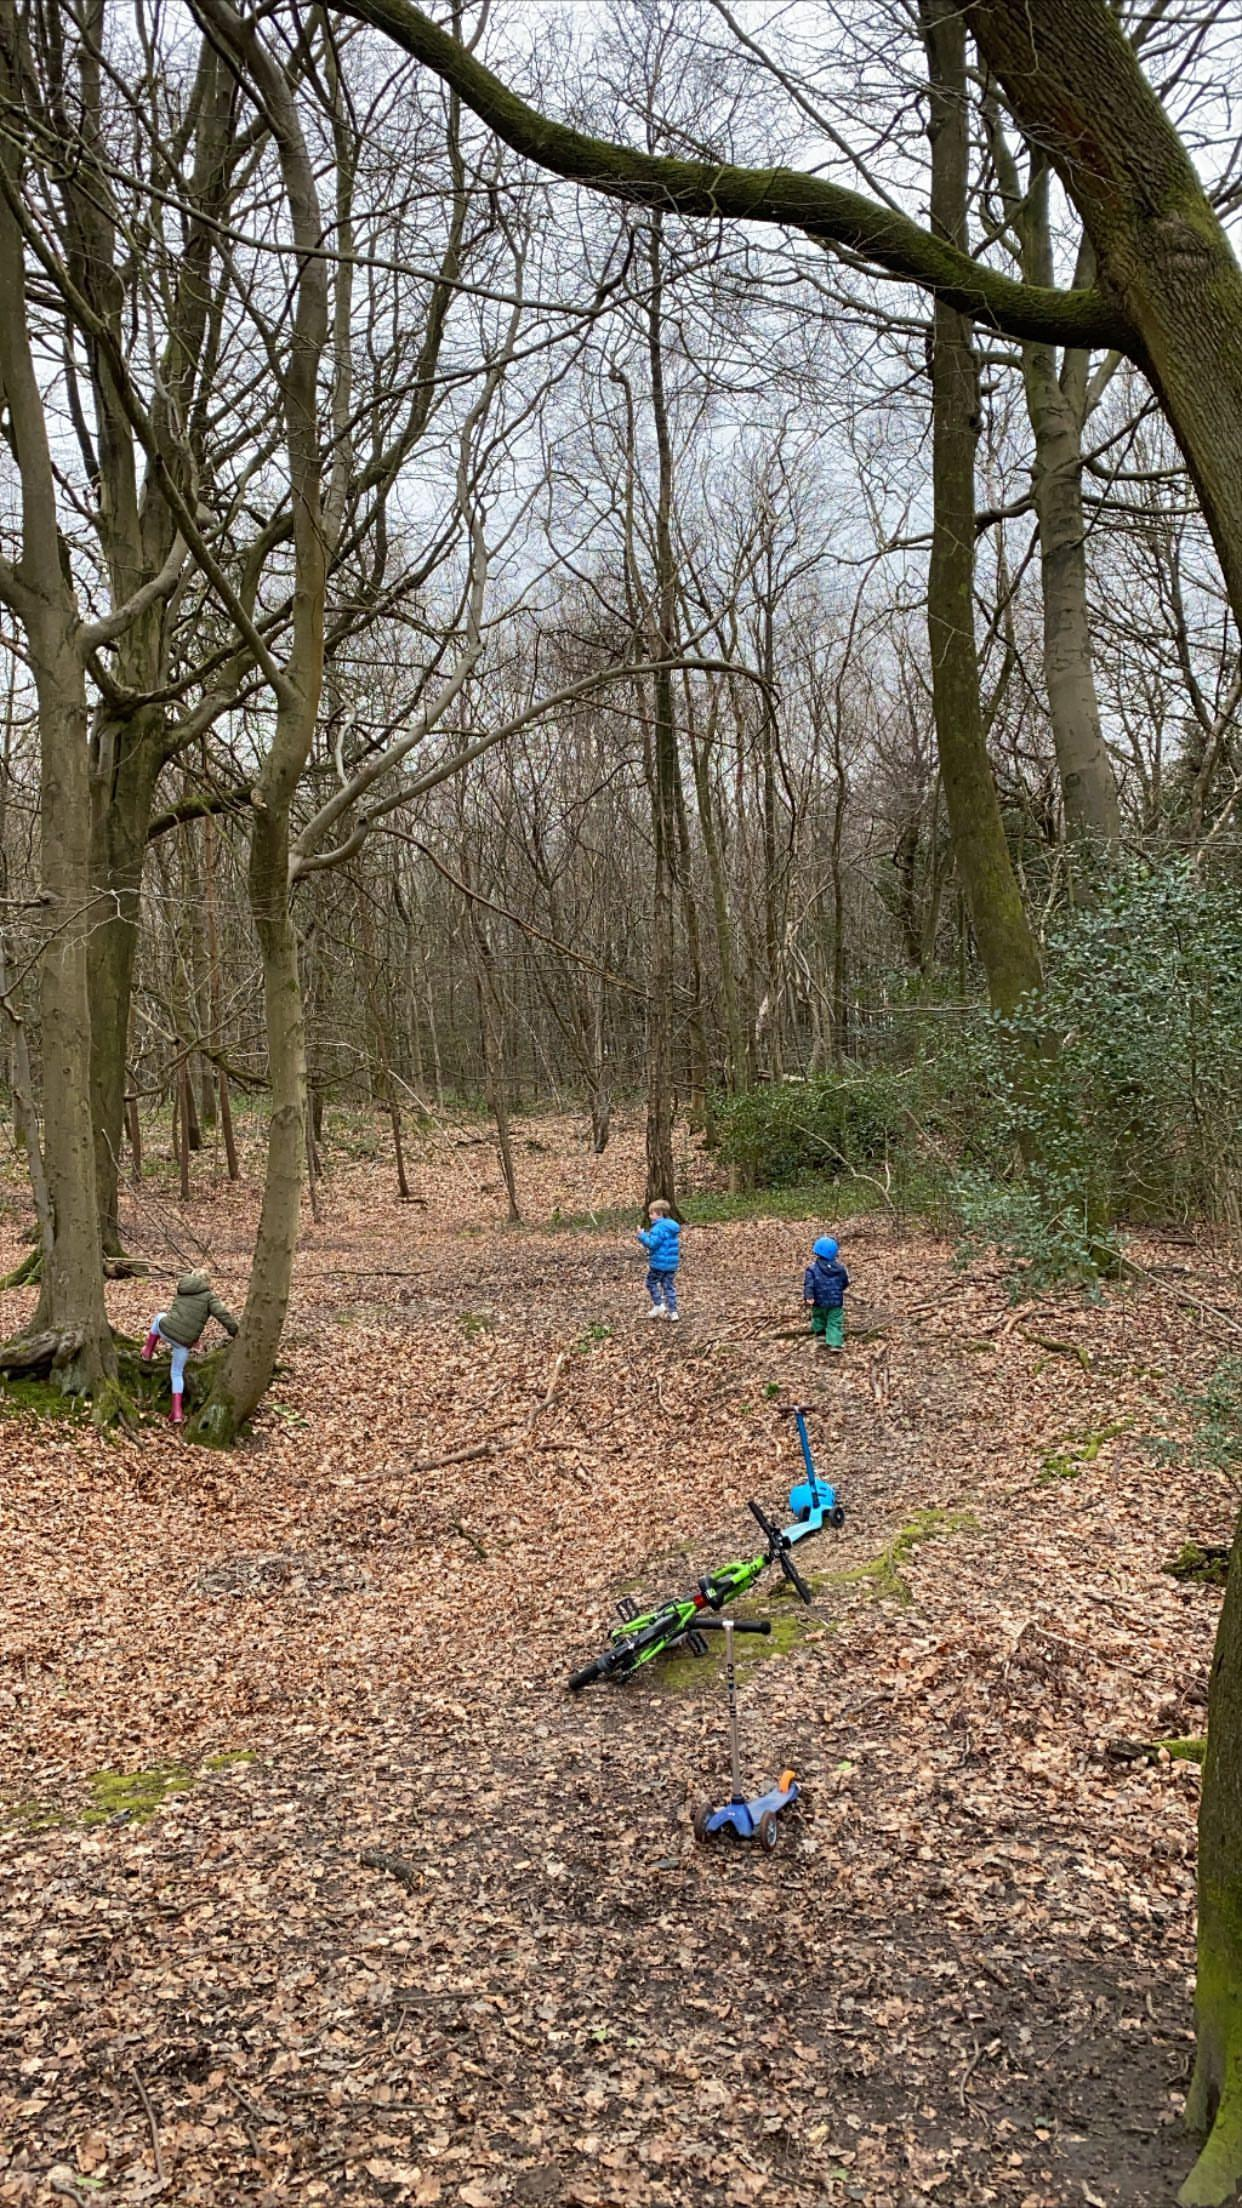 kids in a forest playing with their bikes on the ground, the forest is empty other than the 3 children, taken by instagram @ fortheloveof_mum